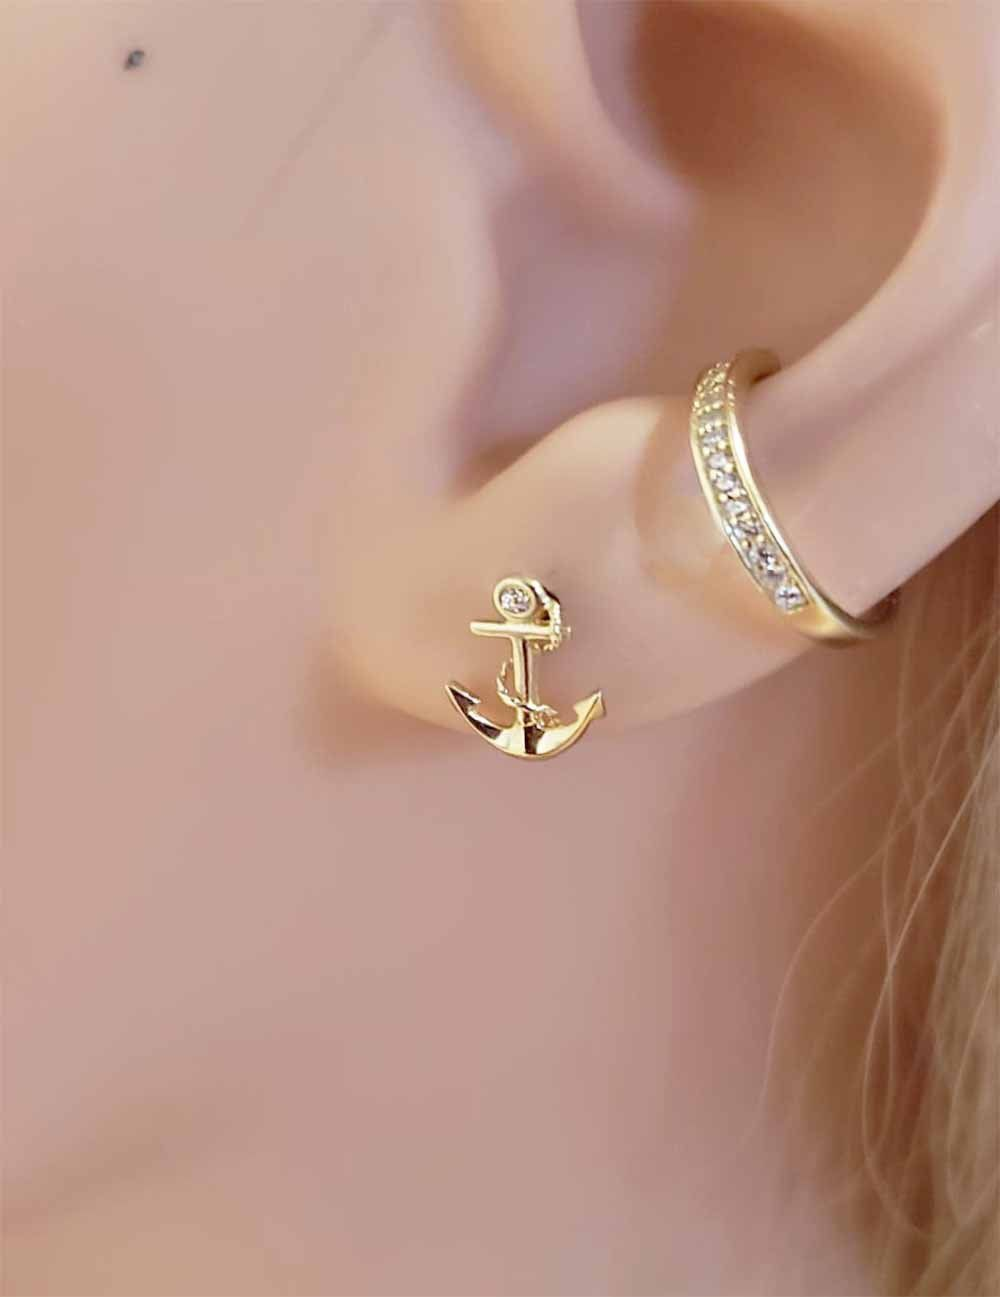 Anchor Ear Studs Nautical Earrings 14kt Solid Gold Jewelry Dainty By